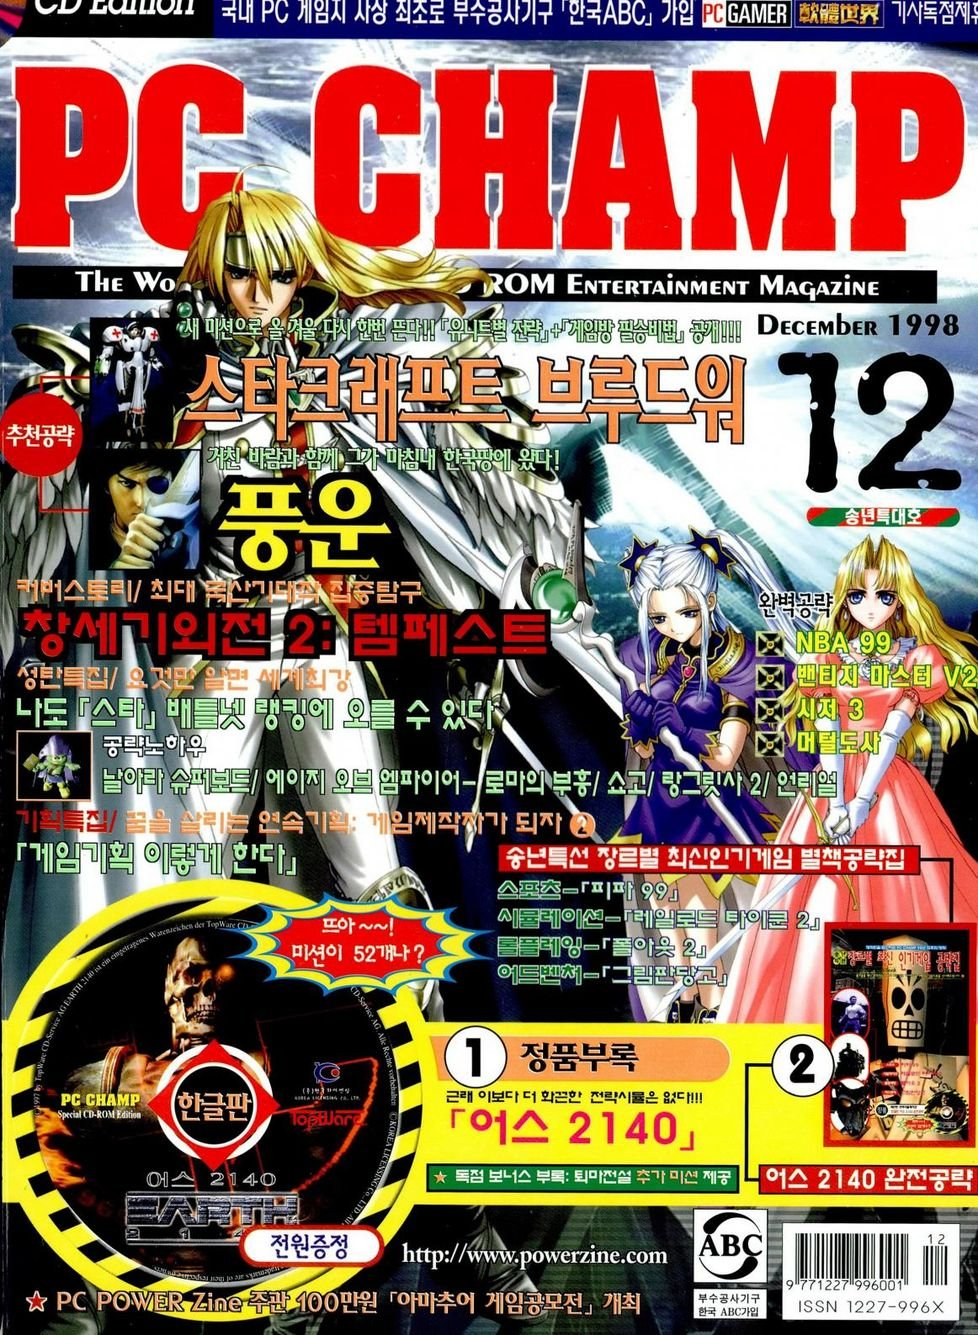 PC Champ Issue 41 (December 1998)